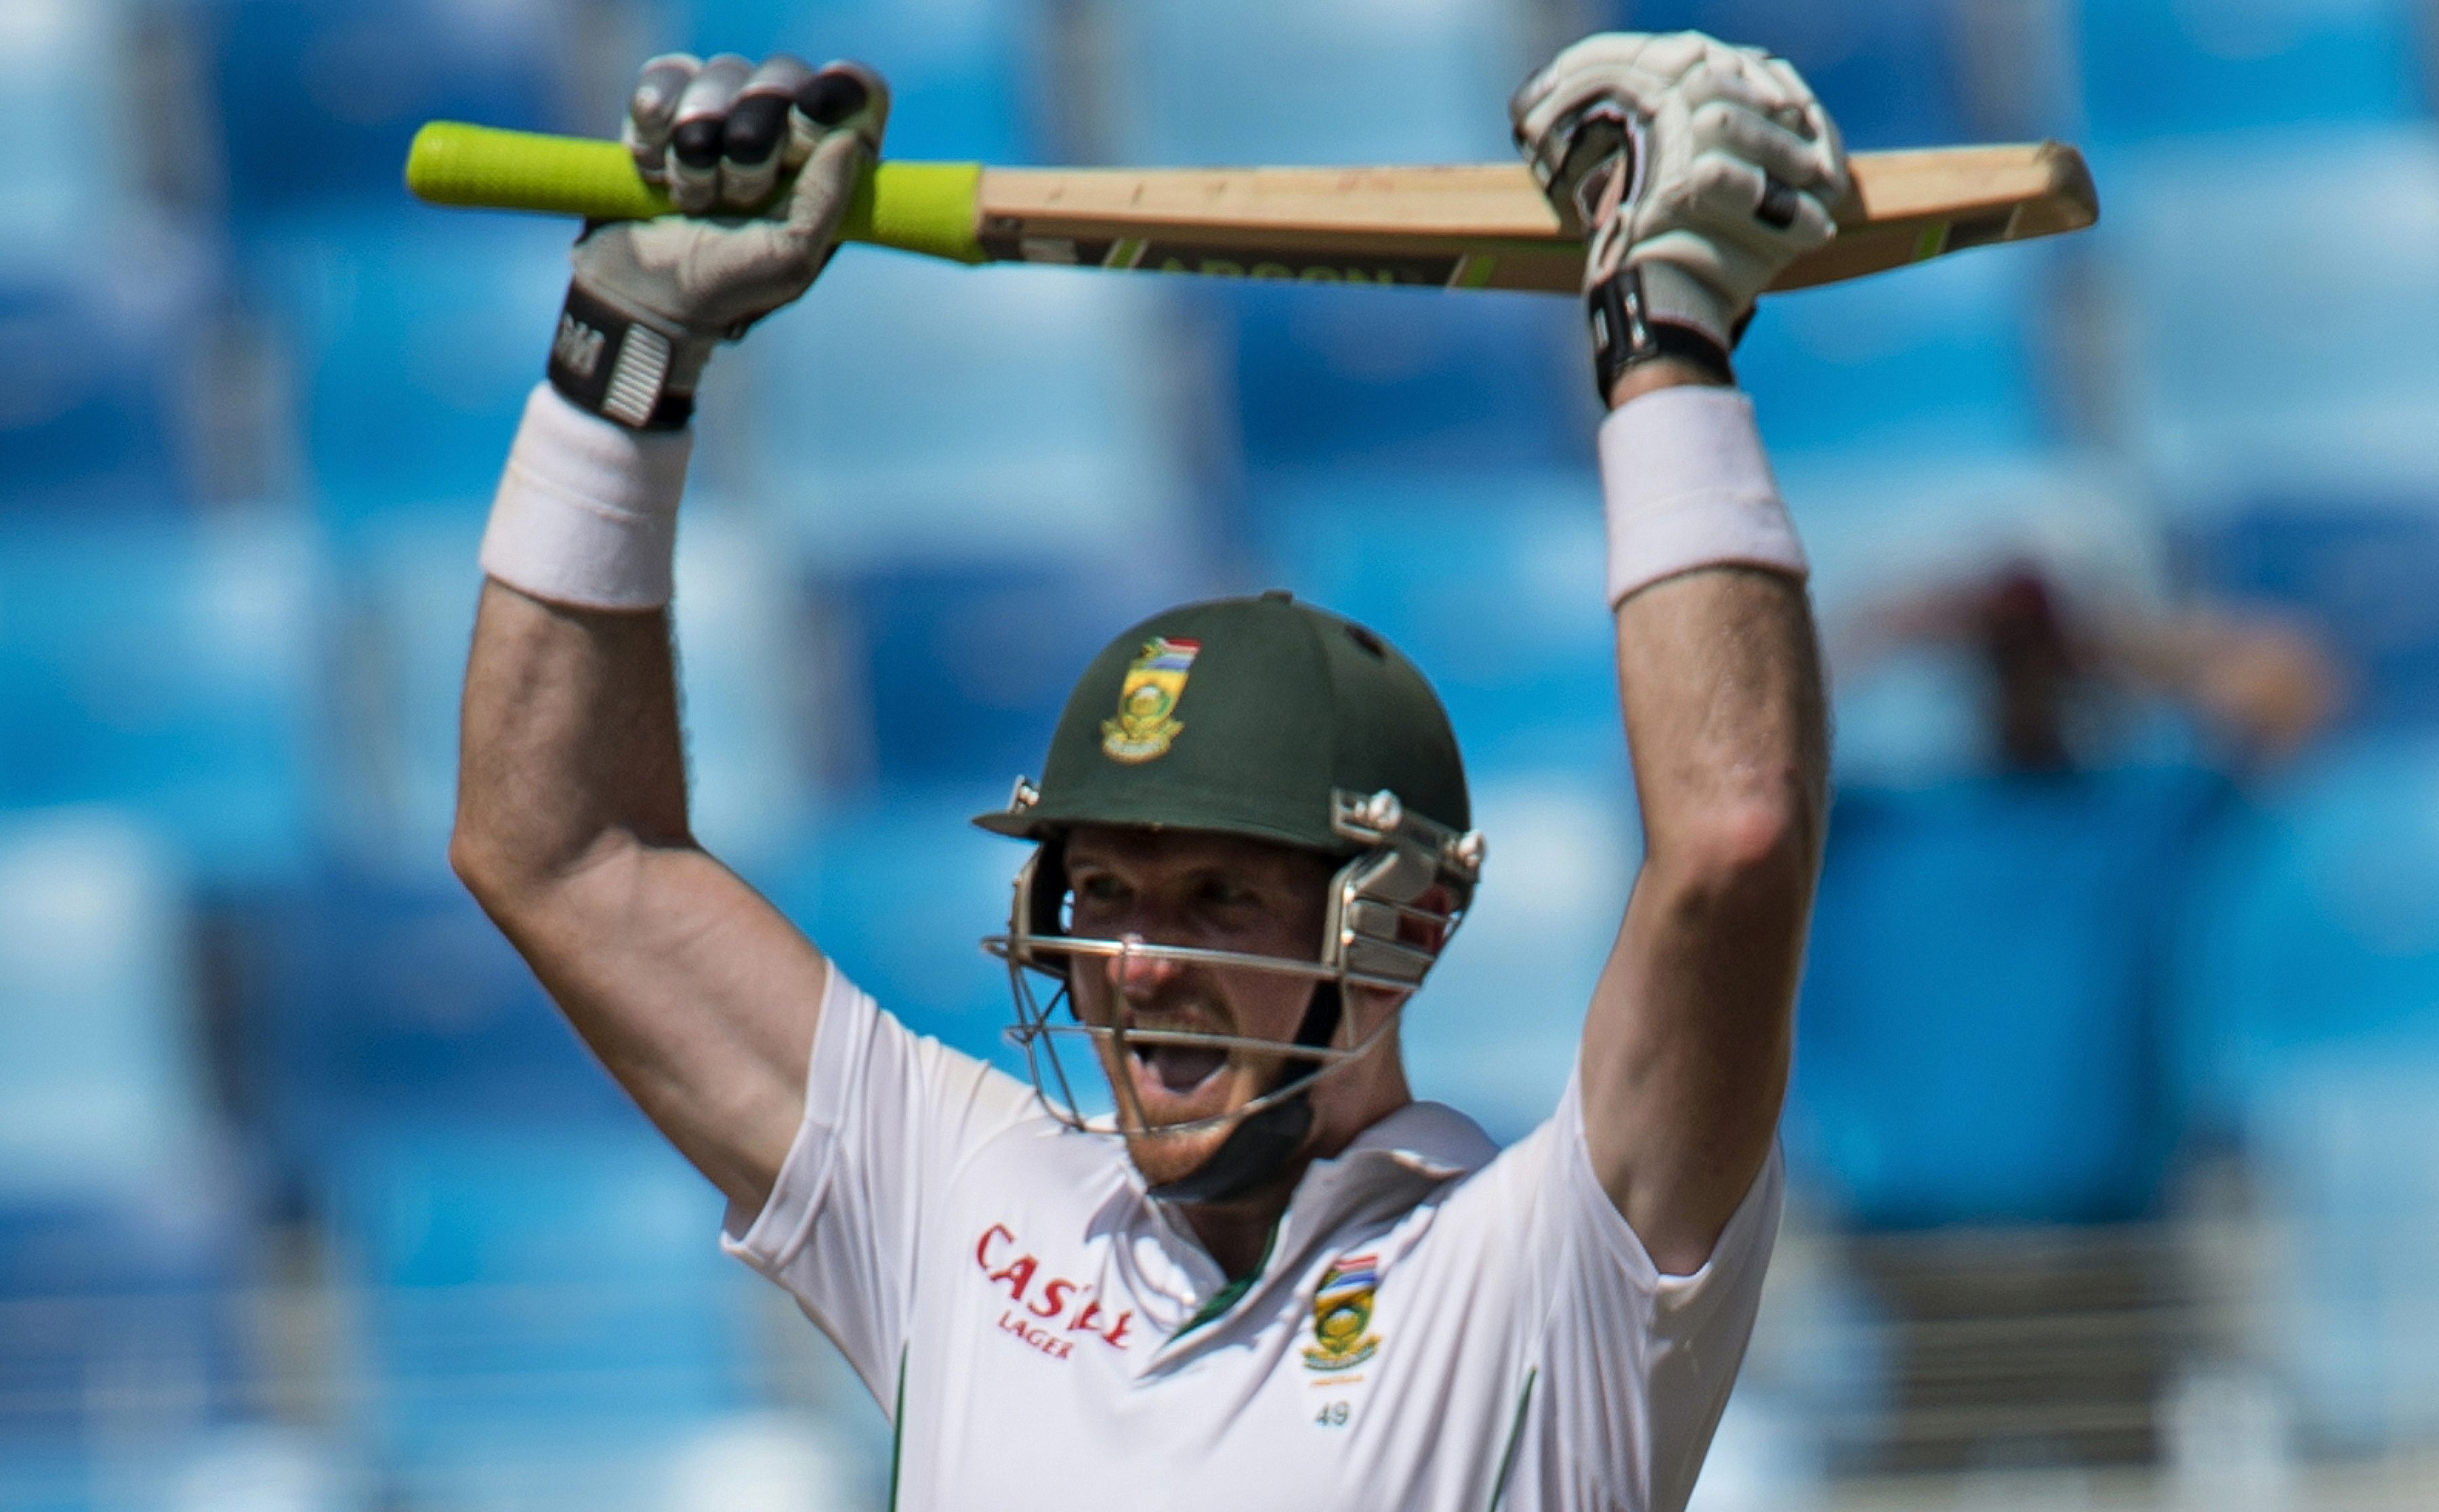 South Africa's captain Graeme Smith celebrates a century (100 runs) during the second day of the second Test Match between Pakistan and South Africa at the Dubai International Cricket Stadium on October 24,  2013. PHOTO: AFP